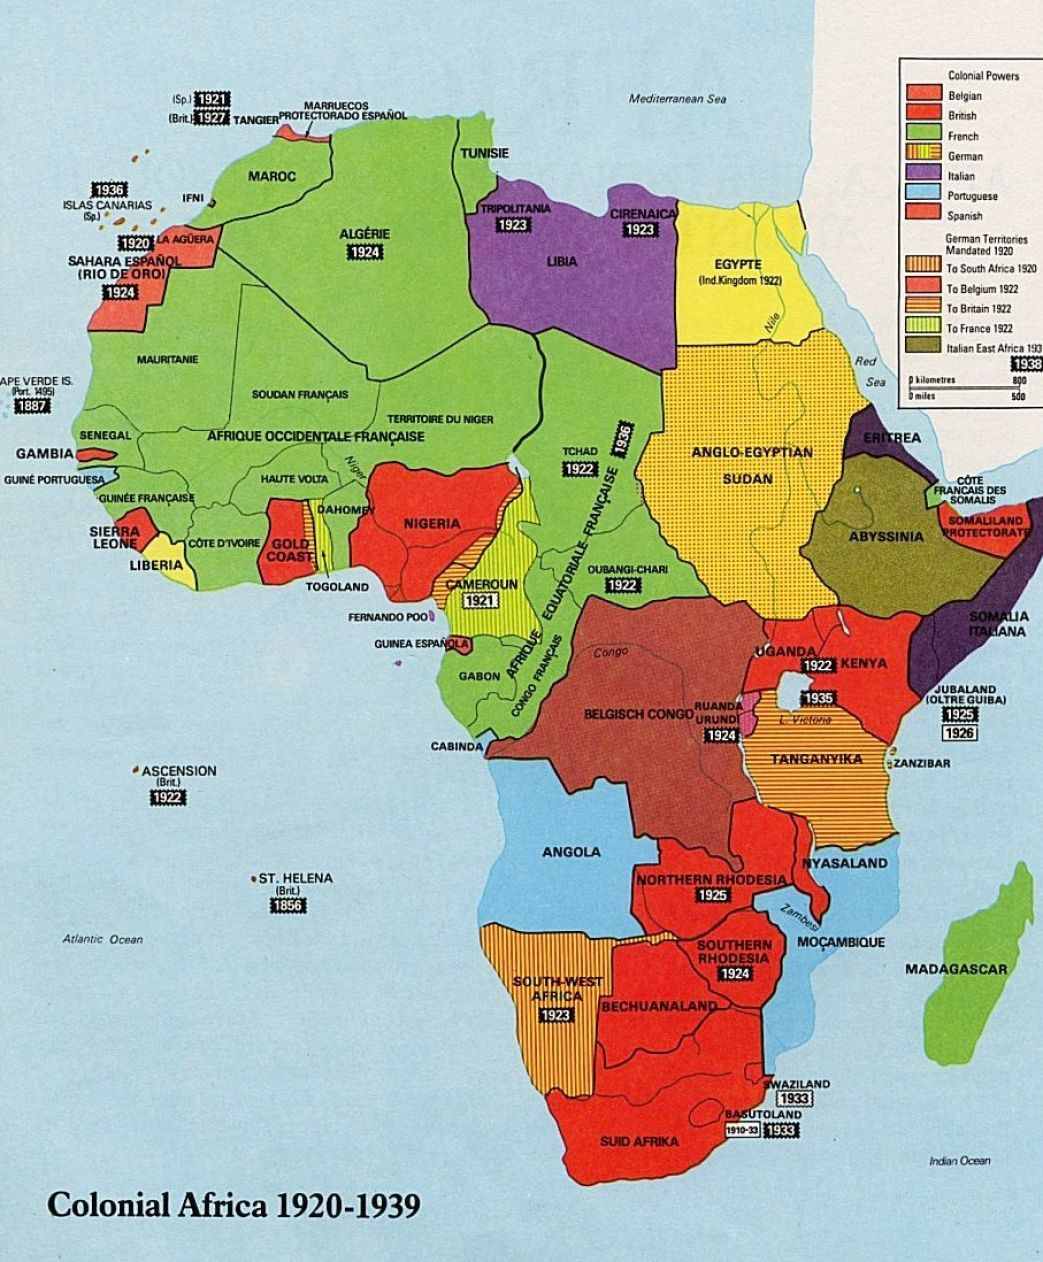 Map Of Africa Countries Labeled.Map Of Africa With Countries Labeled Labeled Map Of Africa